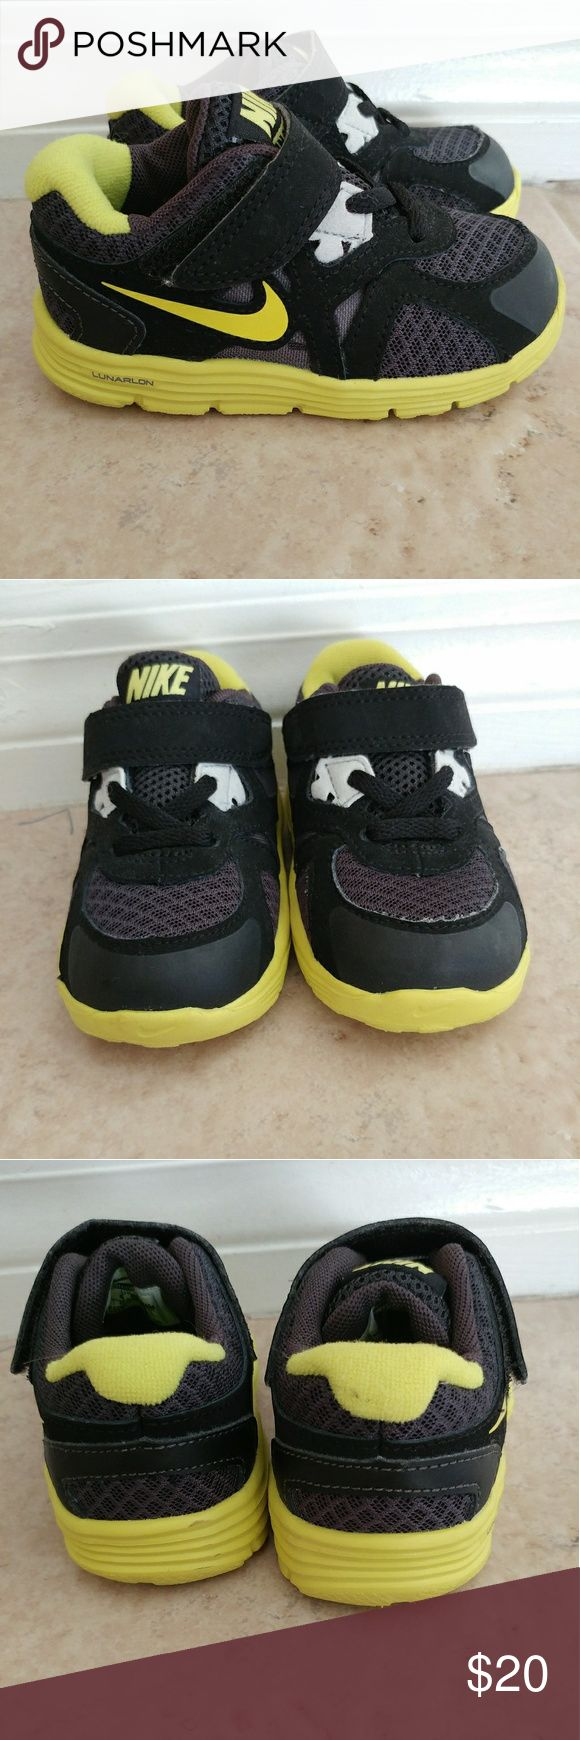 Toddler Nike Lunar Never worn toddler Nike Lunar Black and Yellow Nike Shoes Sneakers